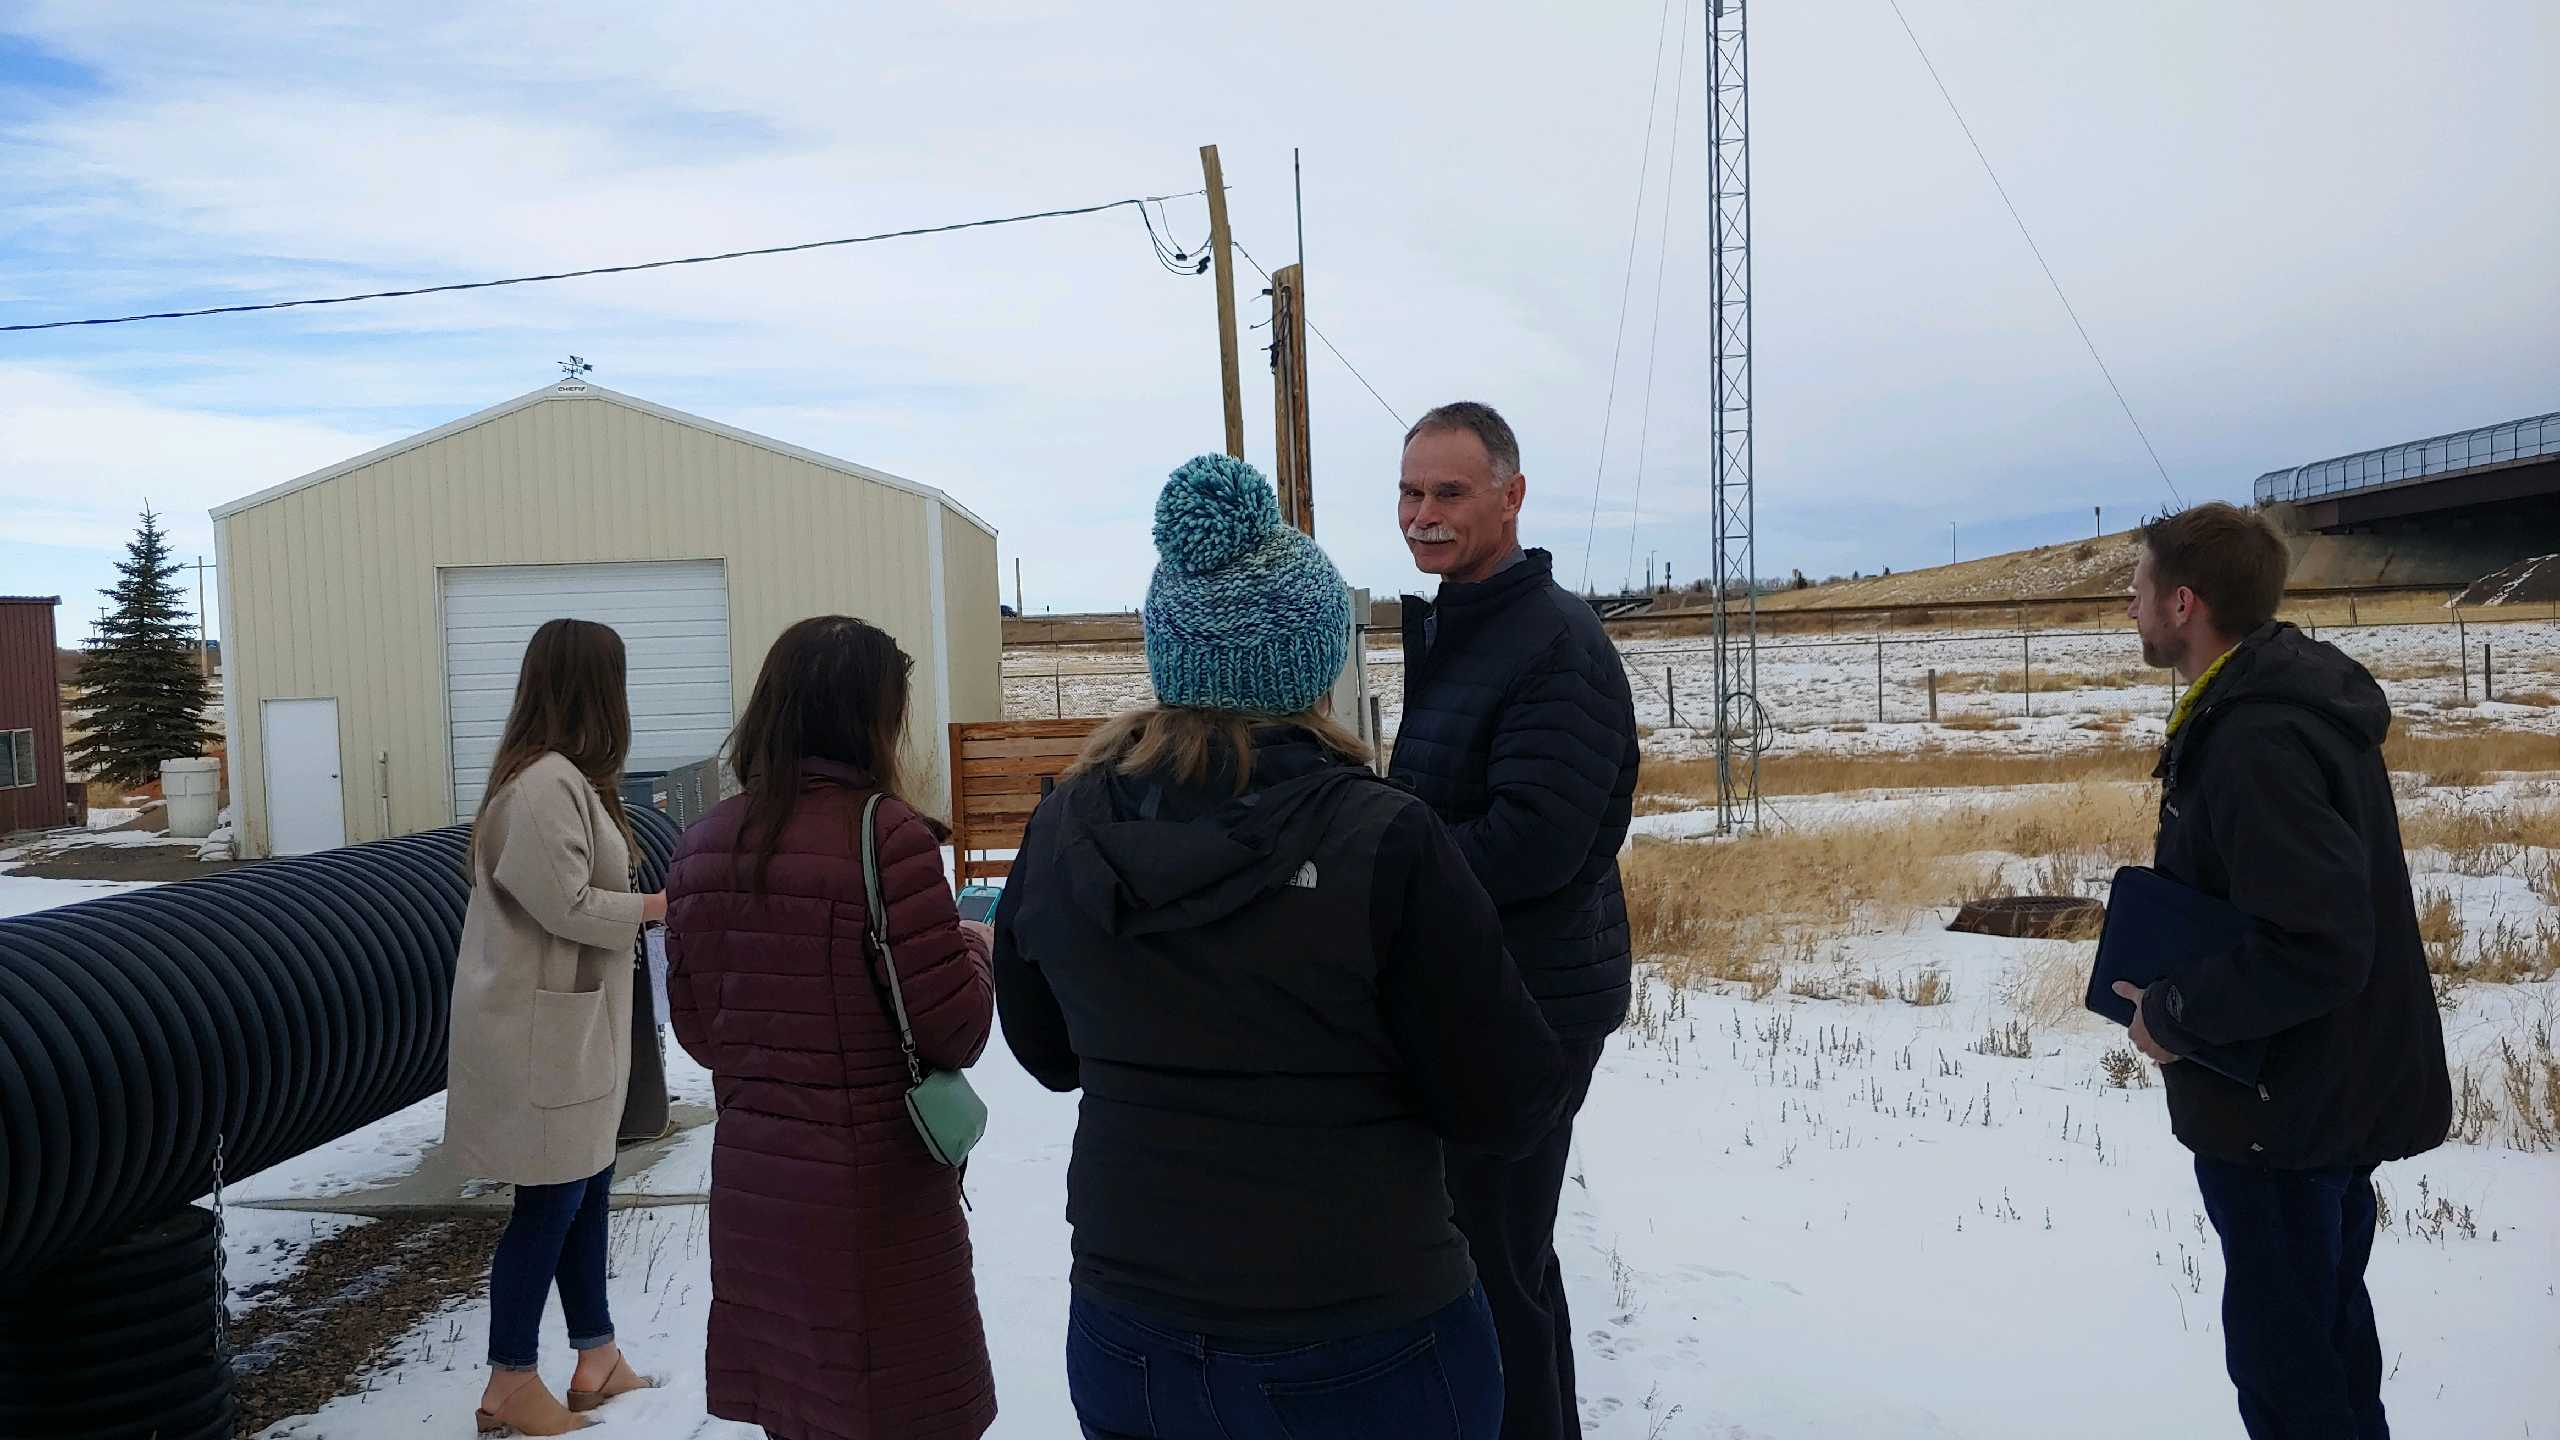 Chief Johnson Discusses Project during Tour